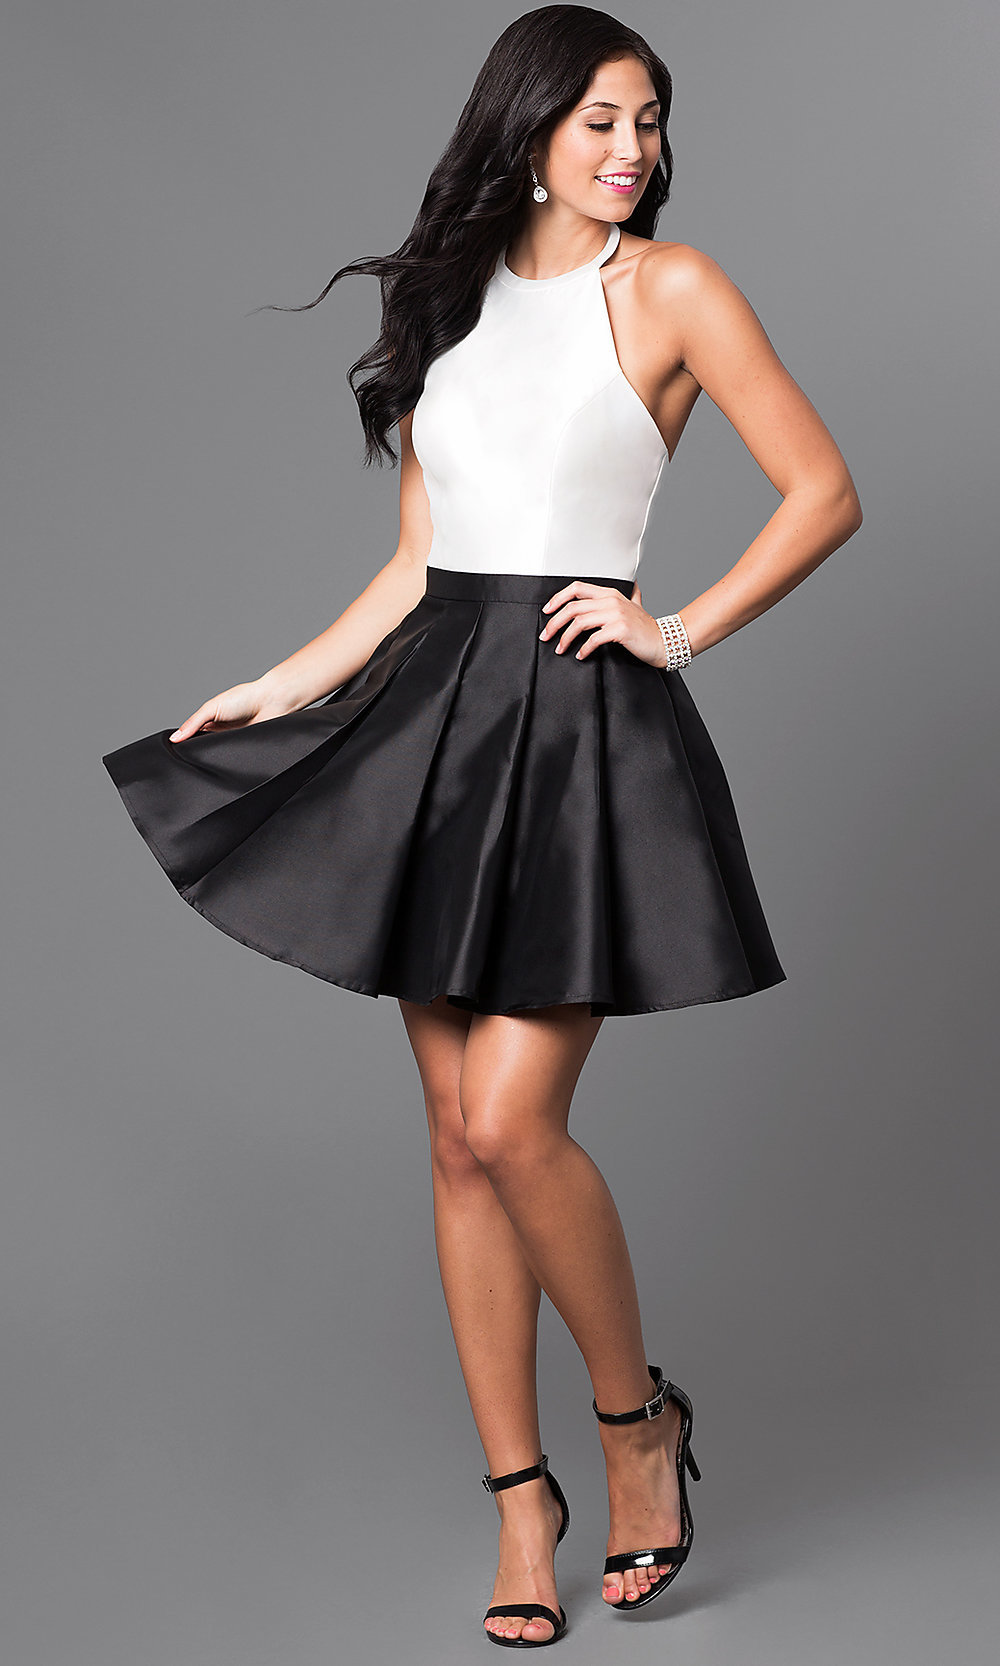 bf859ee5d8145b A-Line Short Halter-Top Cocktail Party Dress